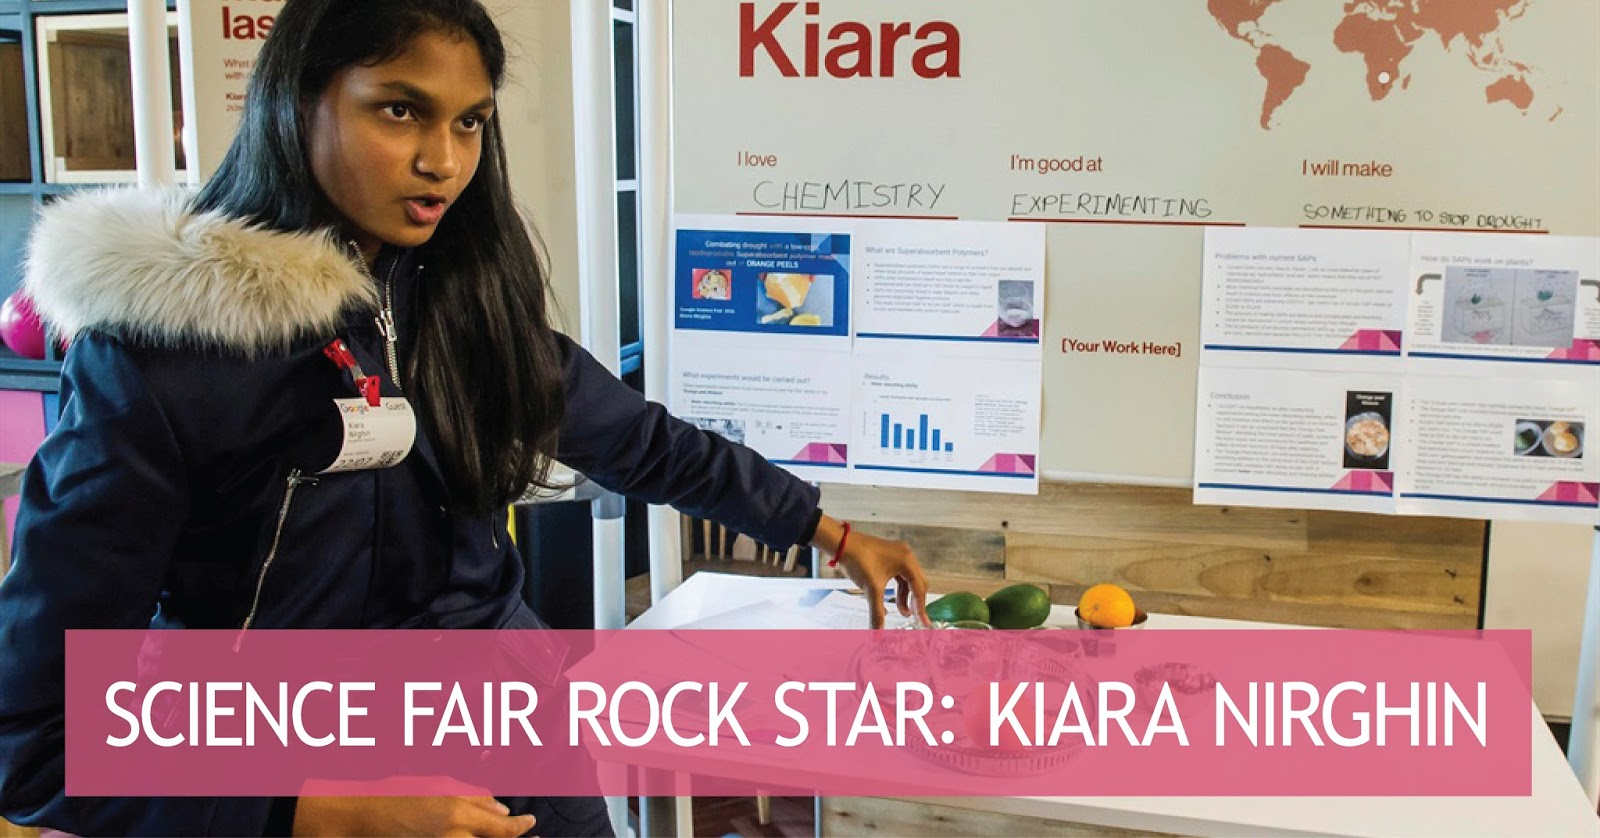 science fair rock star: kiara nirghin ~ self-rescuing princess society